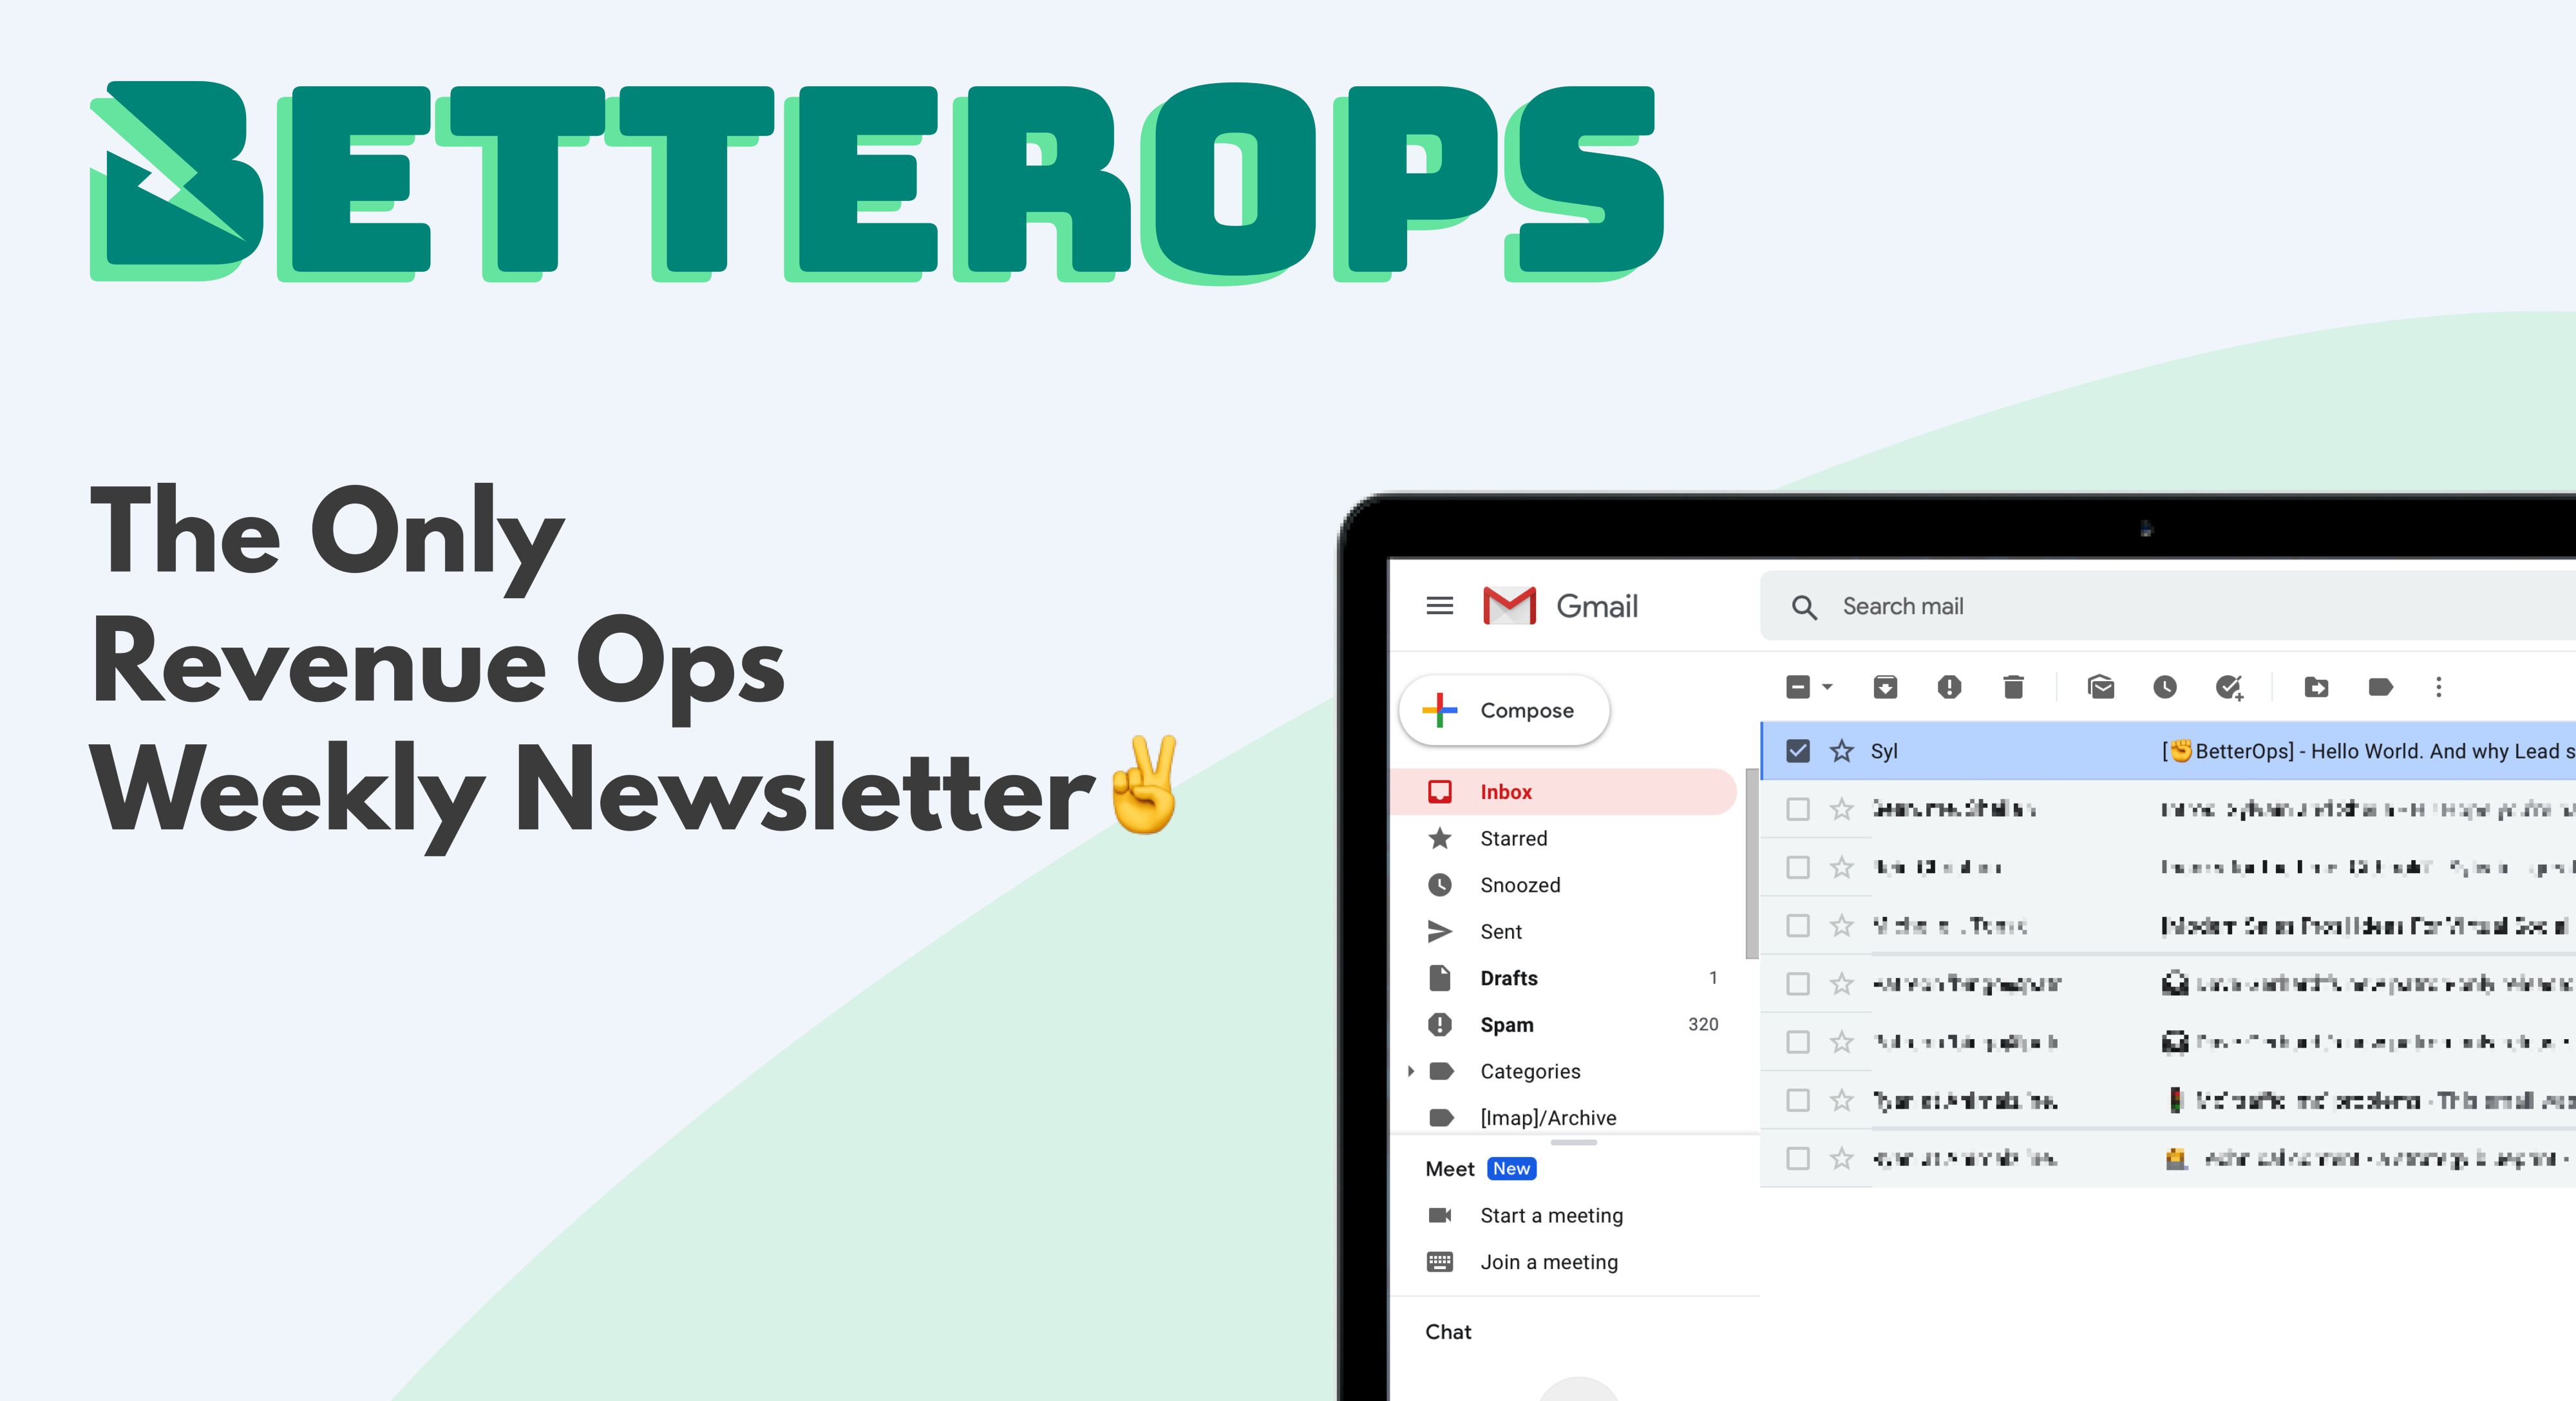 The Only Revenue Ops Weekly Newsletter